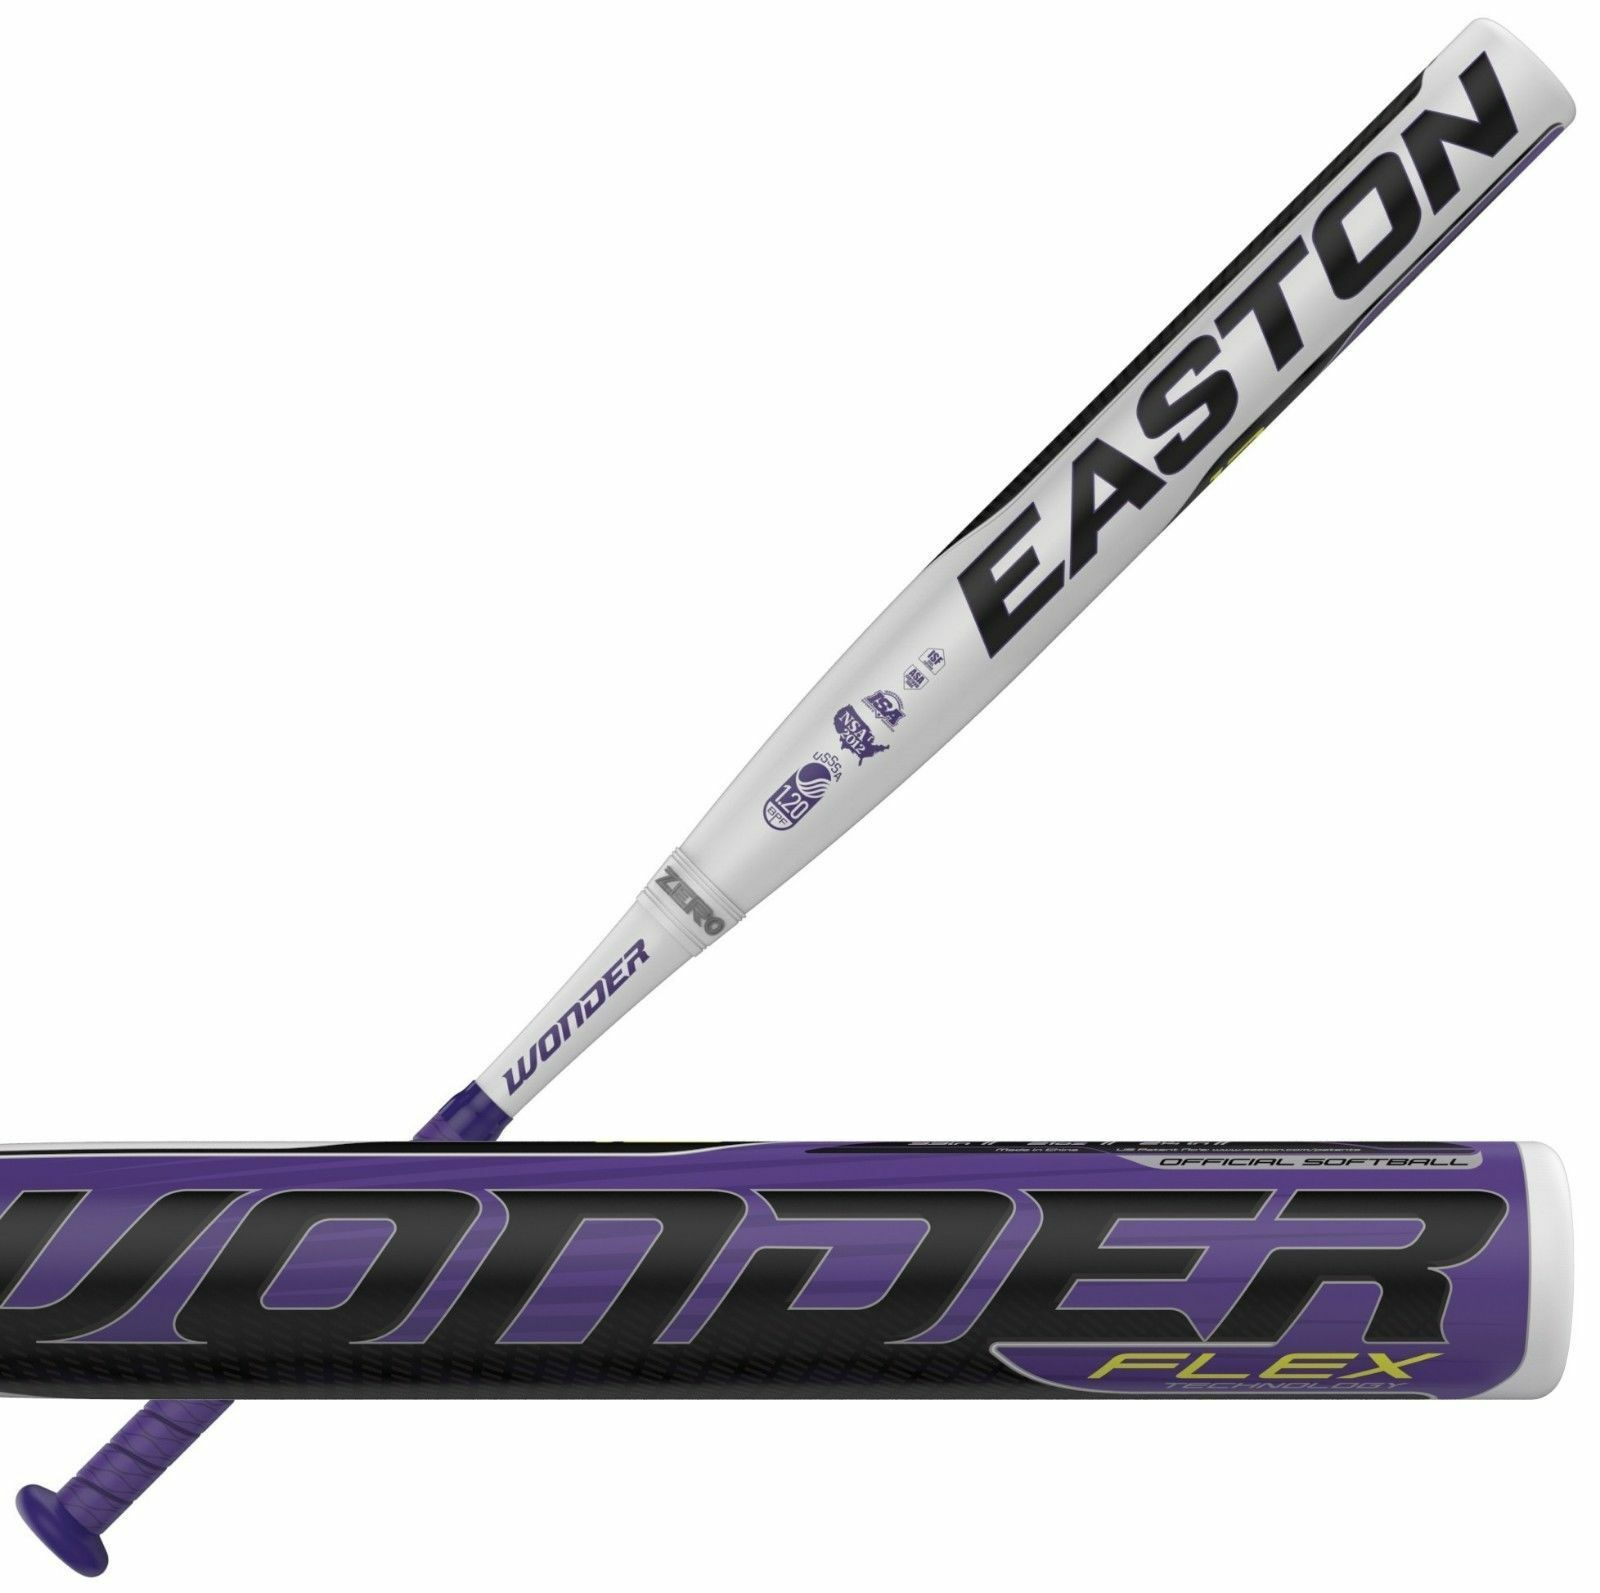 2019 Easton Wonder -12 32